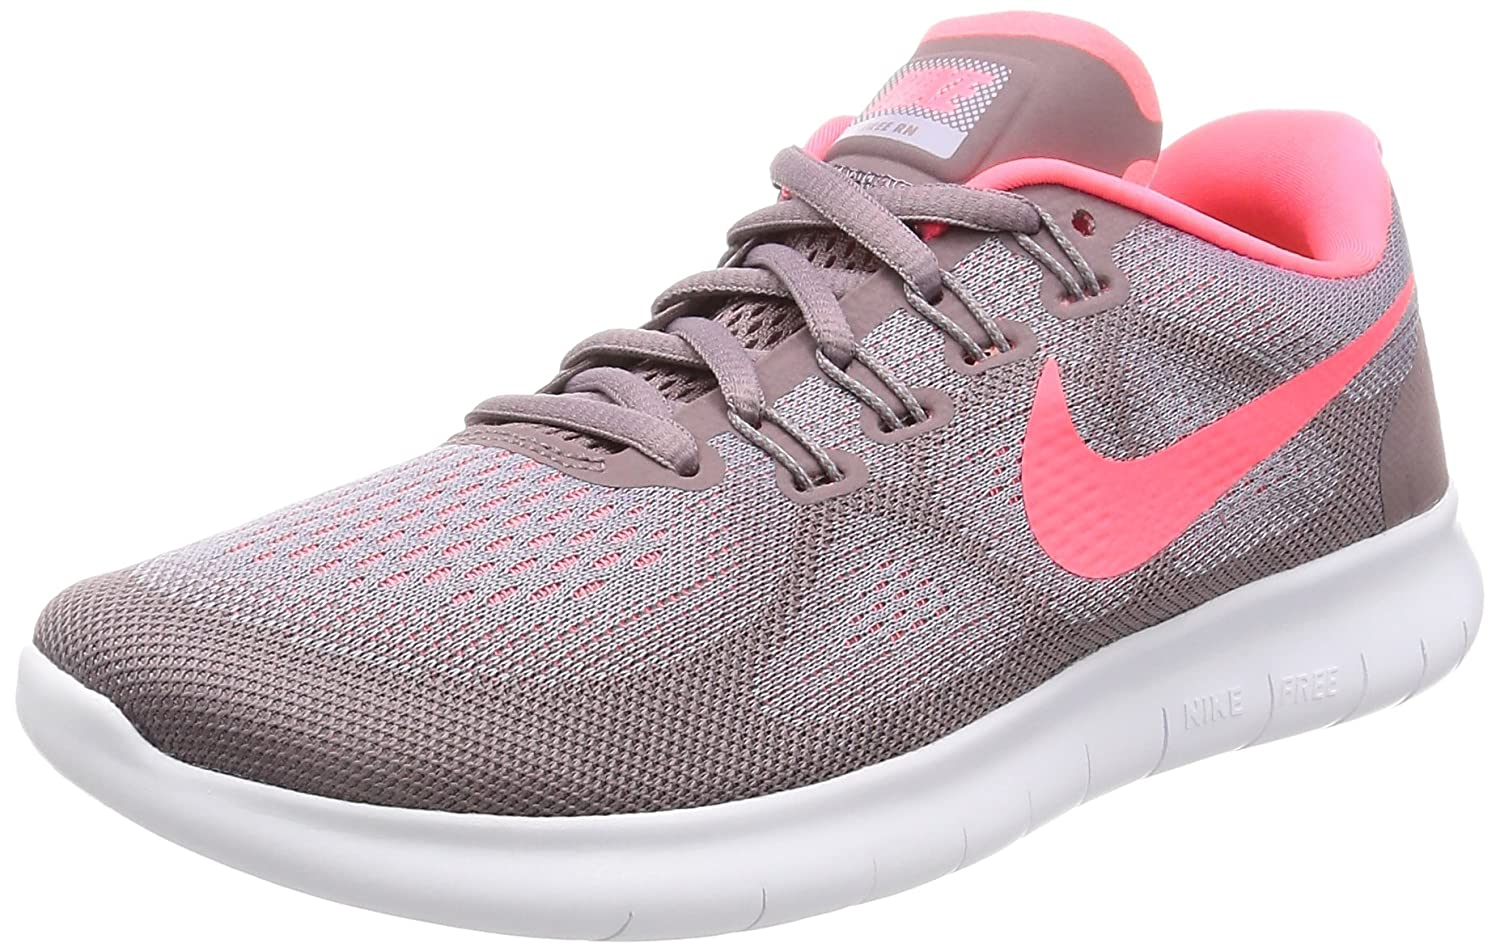 hot sale online 52eea ade76 Nike Women s Free Rn 2017 Running Shoes, (Provence Purple Taupe Grey Ice  Peach Hot Punch), 7 UK 41 EU  Amazon.co.uk  Shoes   Bags